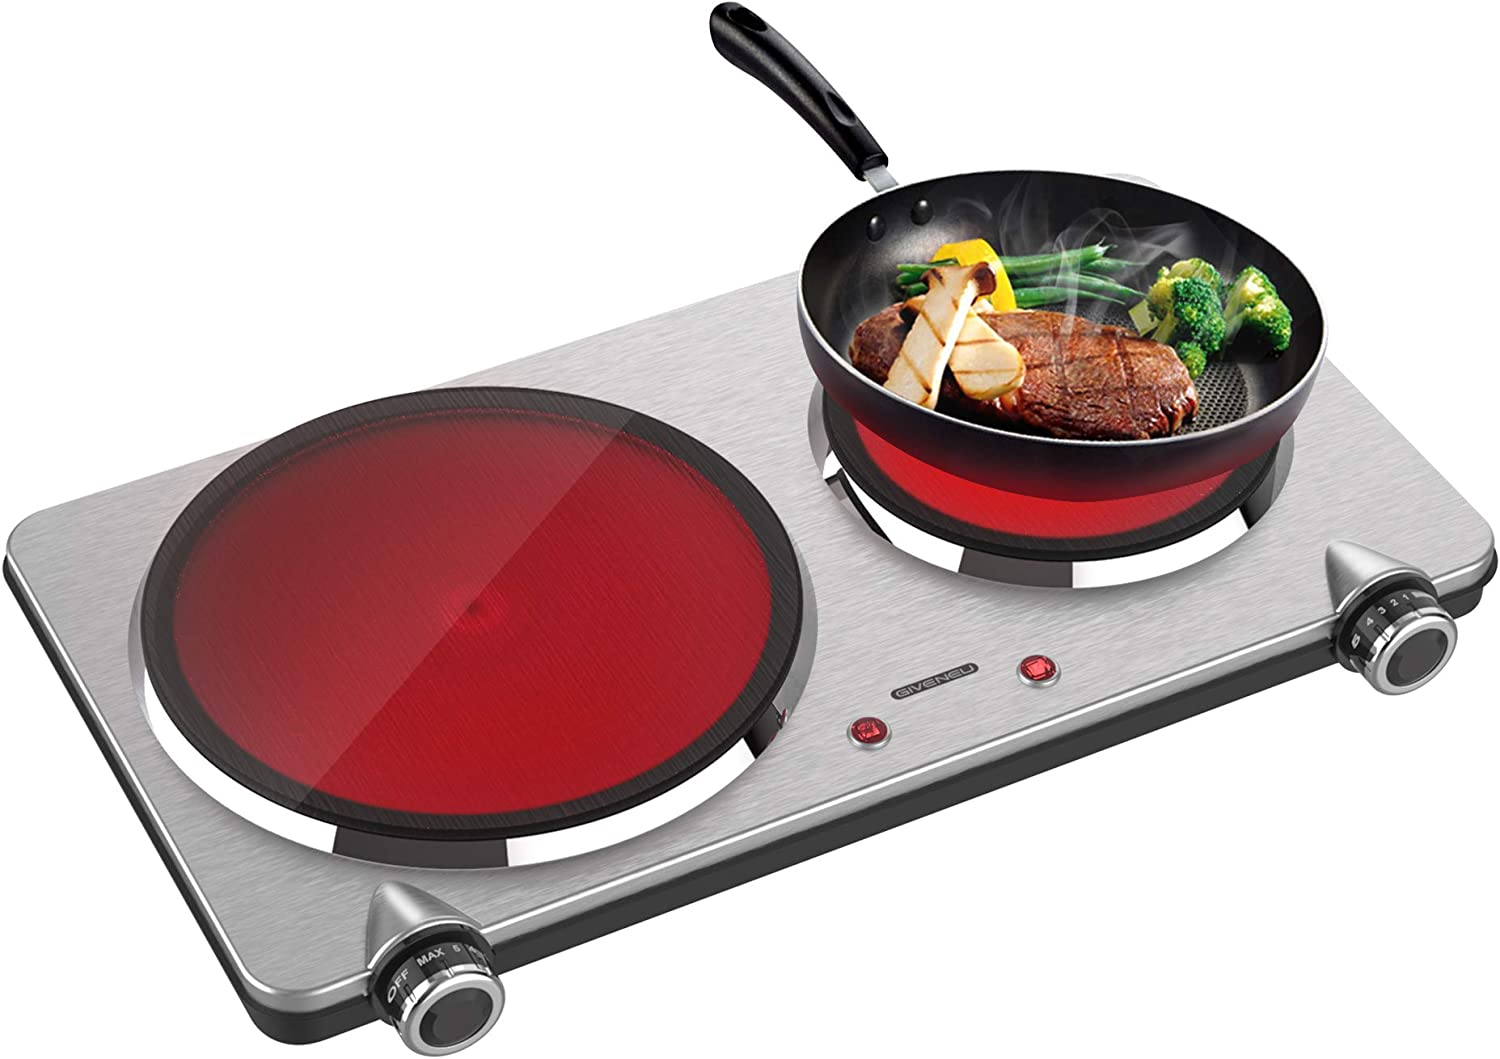 GIVENEU Portable Ceramic Infrared Cooktop, Double Infrared Burner for Cooking, 1800W Electric Ceramic Hot Plate, Portable Electric Stove for Small Home, Dorm and Camping